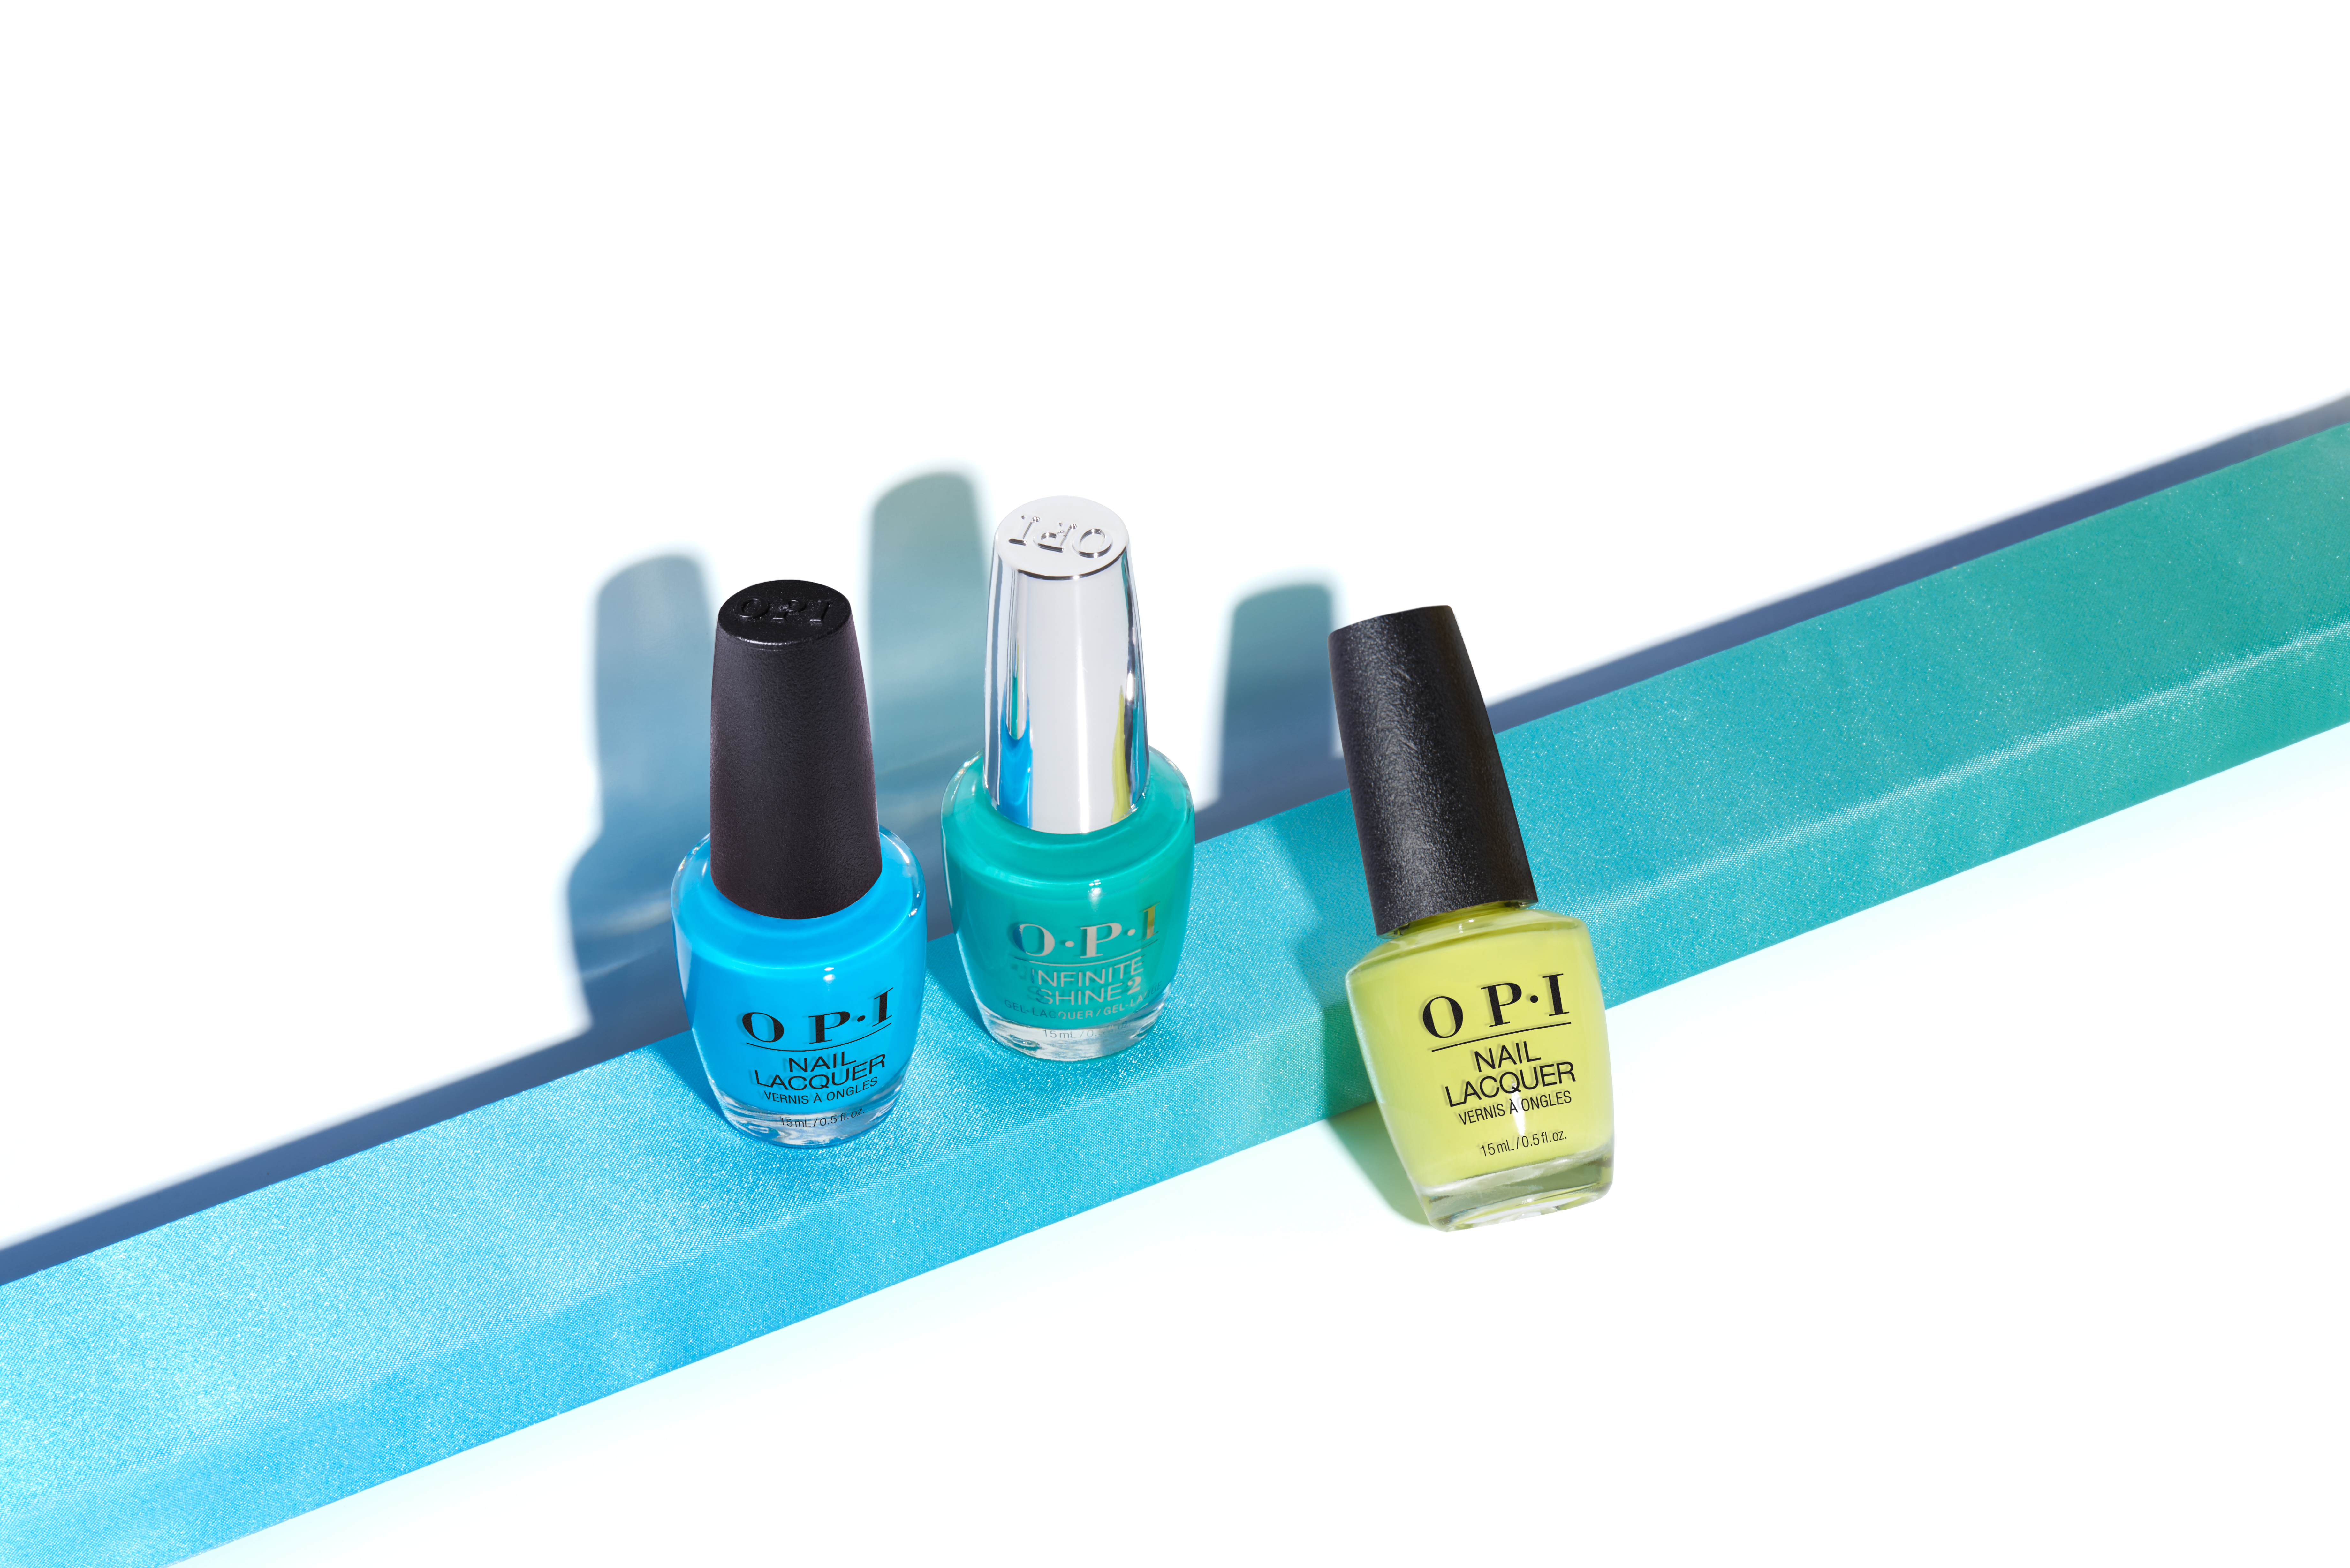 Neon_Products0018